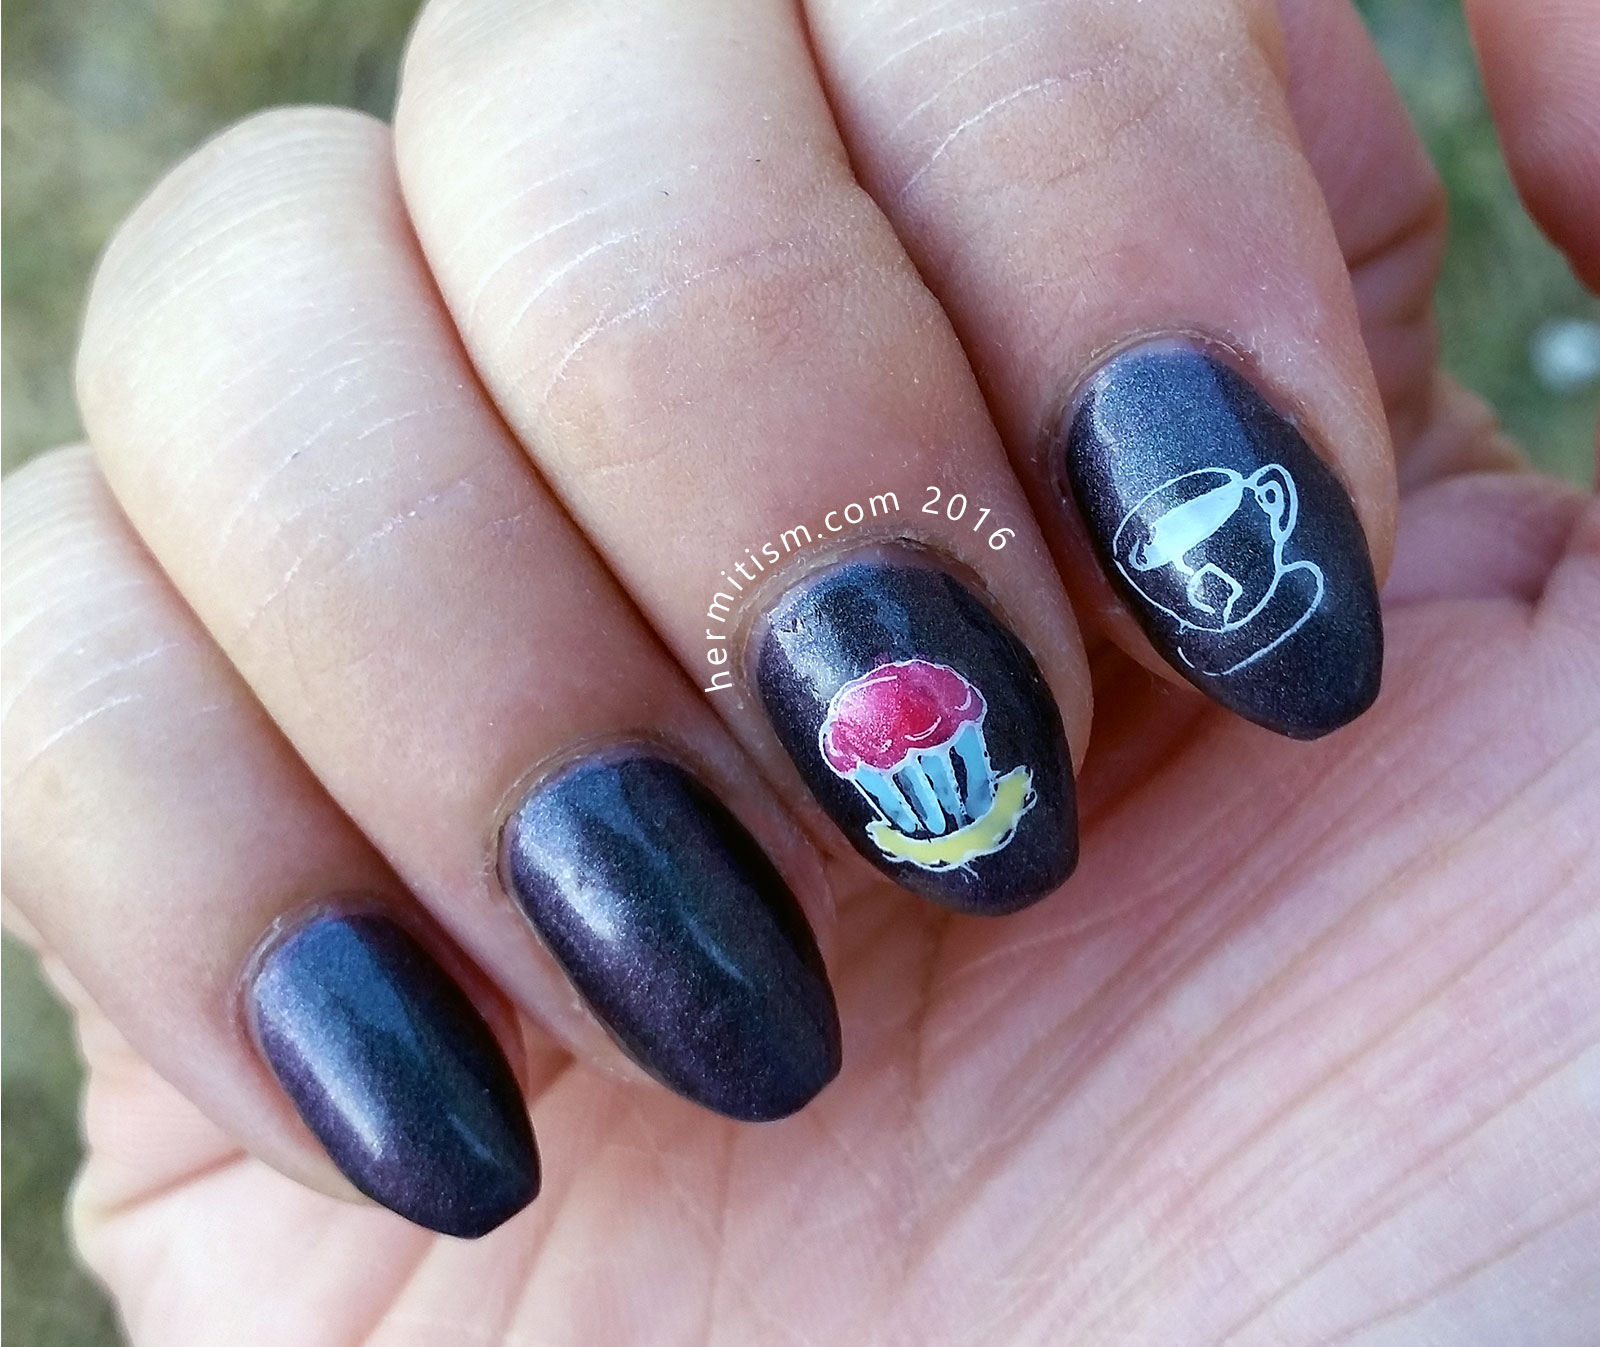 I is for Icing - ABC Nail Art Challenge - Hermit Werds